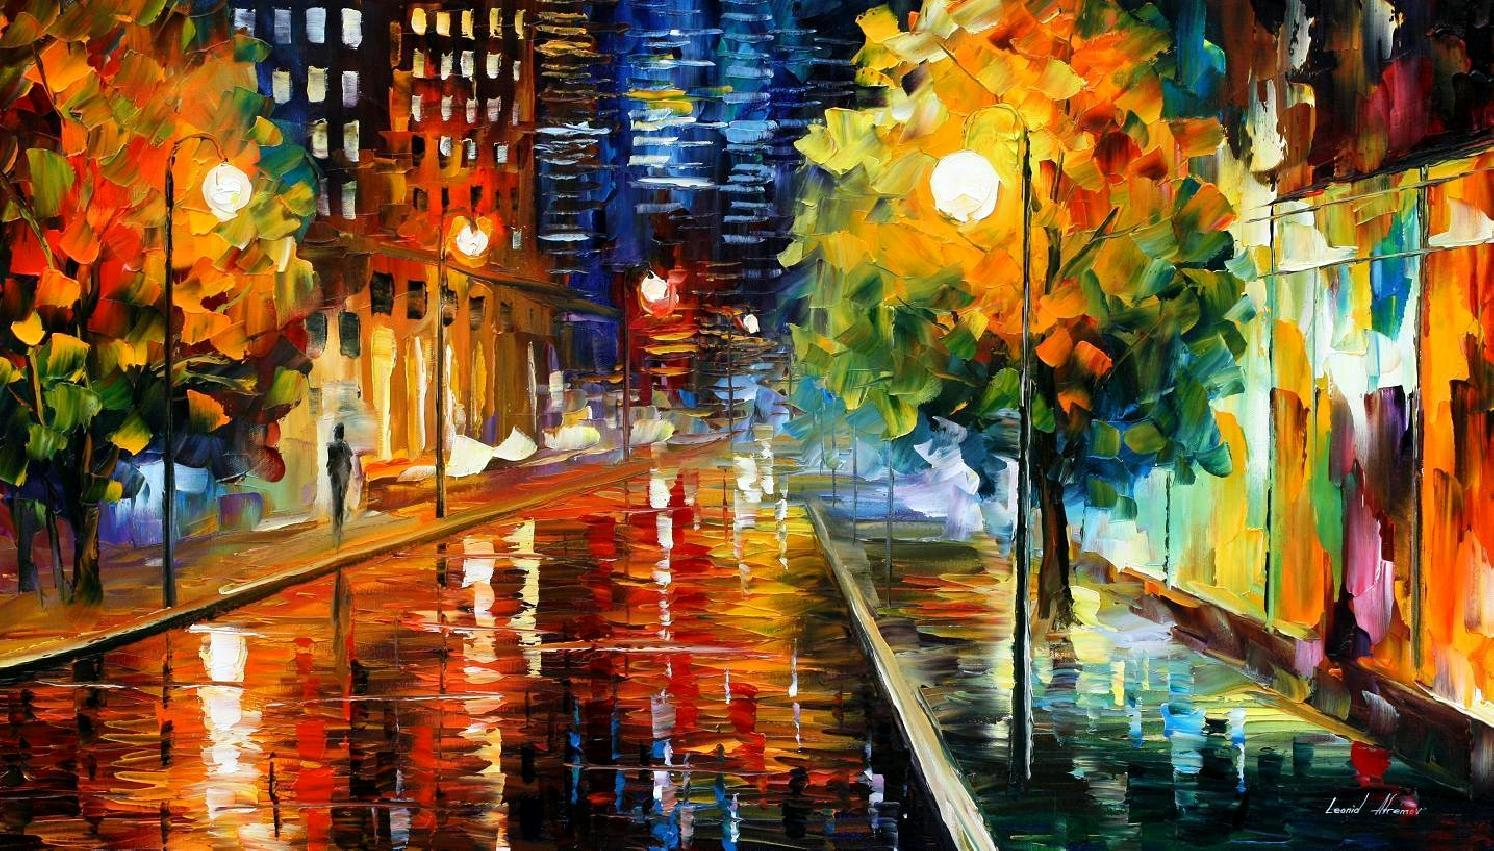 Rainy Fall Day Wallpaper Downtown Street Palette Knife Oil Painting On Canvas By